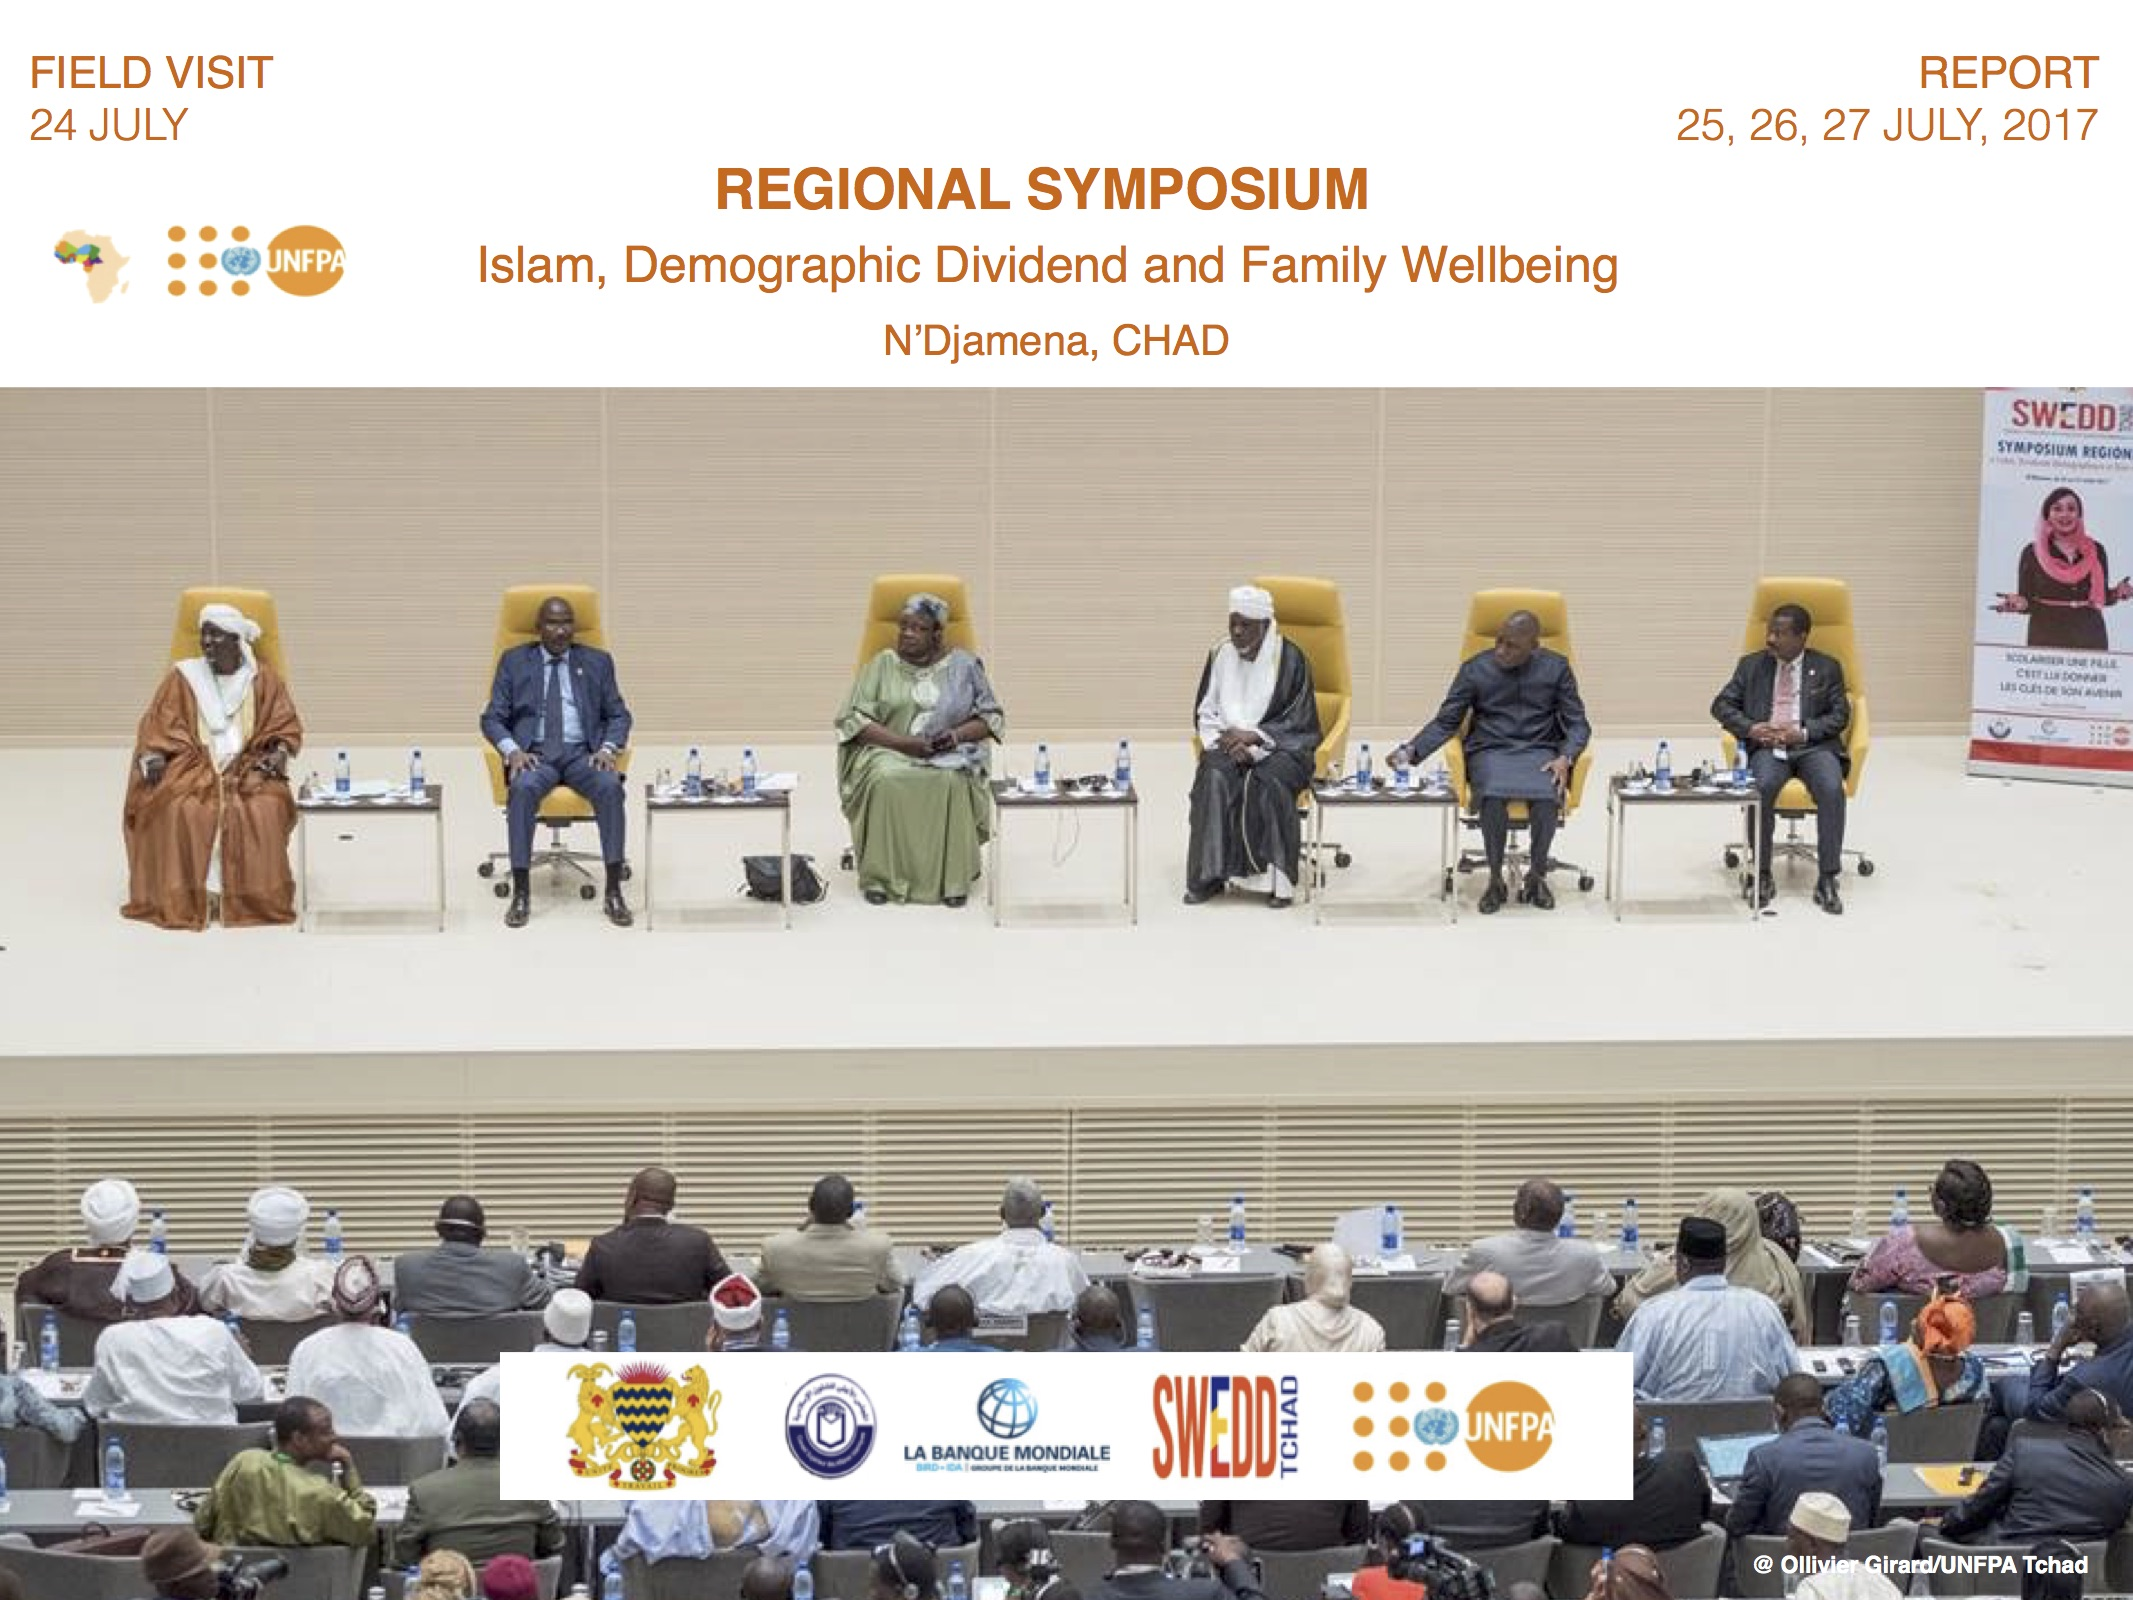 UNFPA WVARO Regional Islam, Demographic Dividend and Family Wellbeing